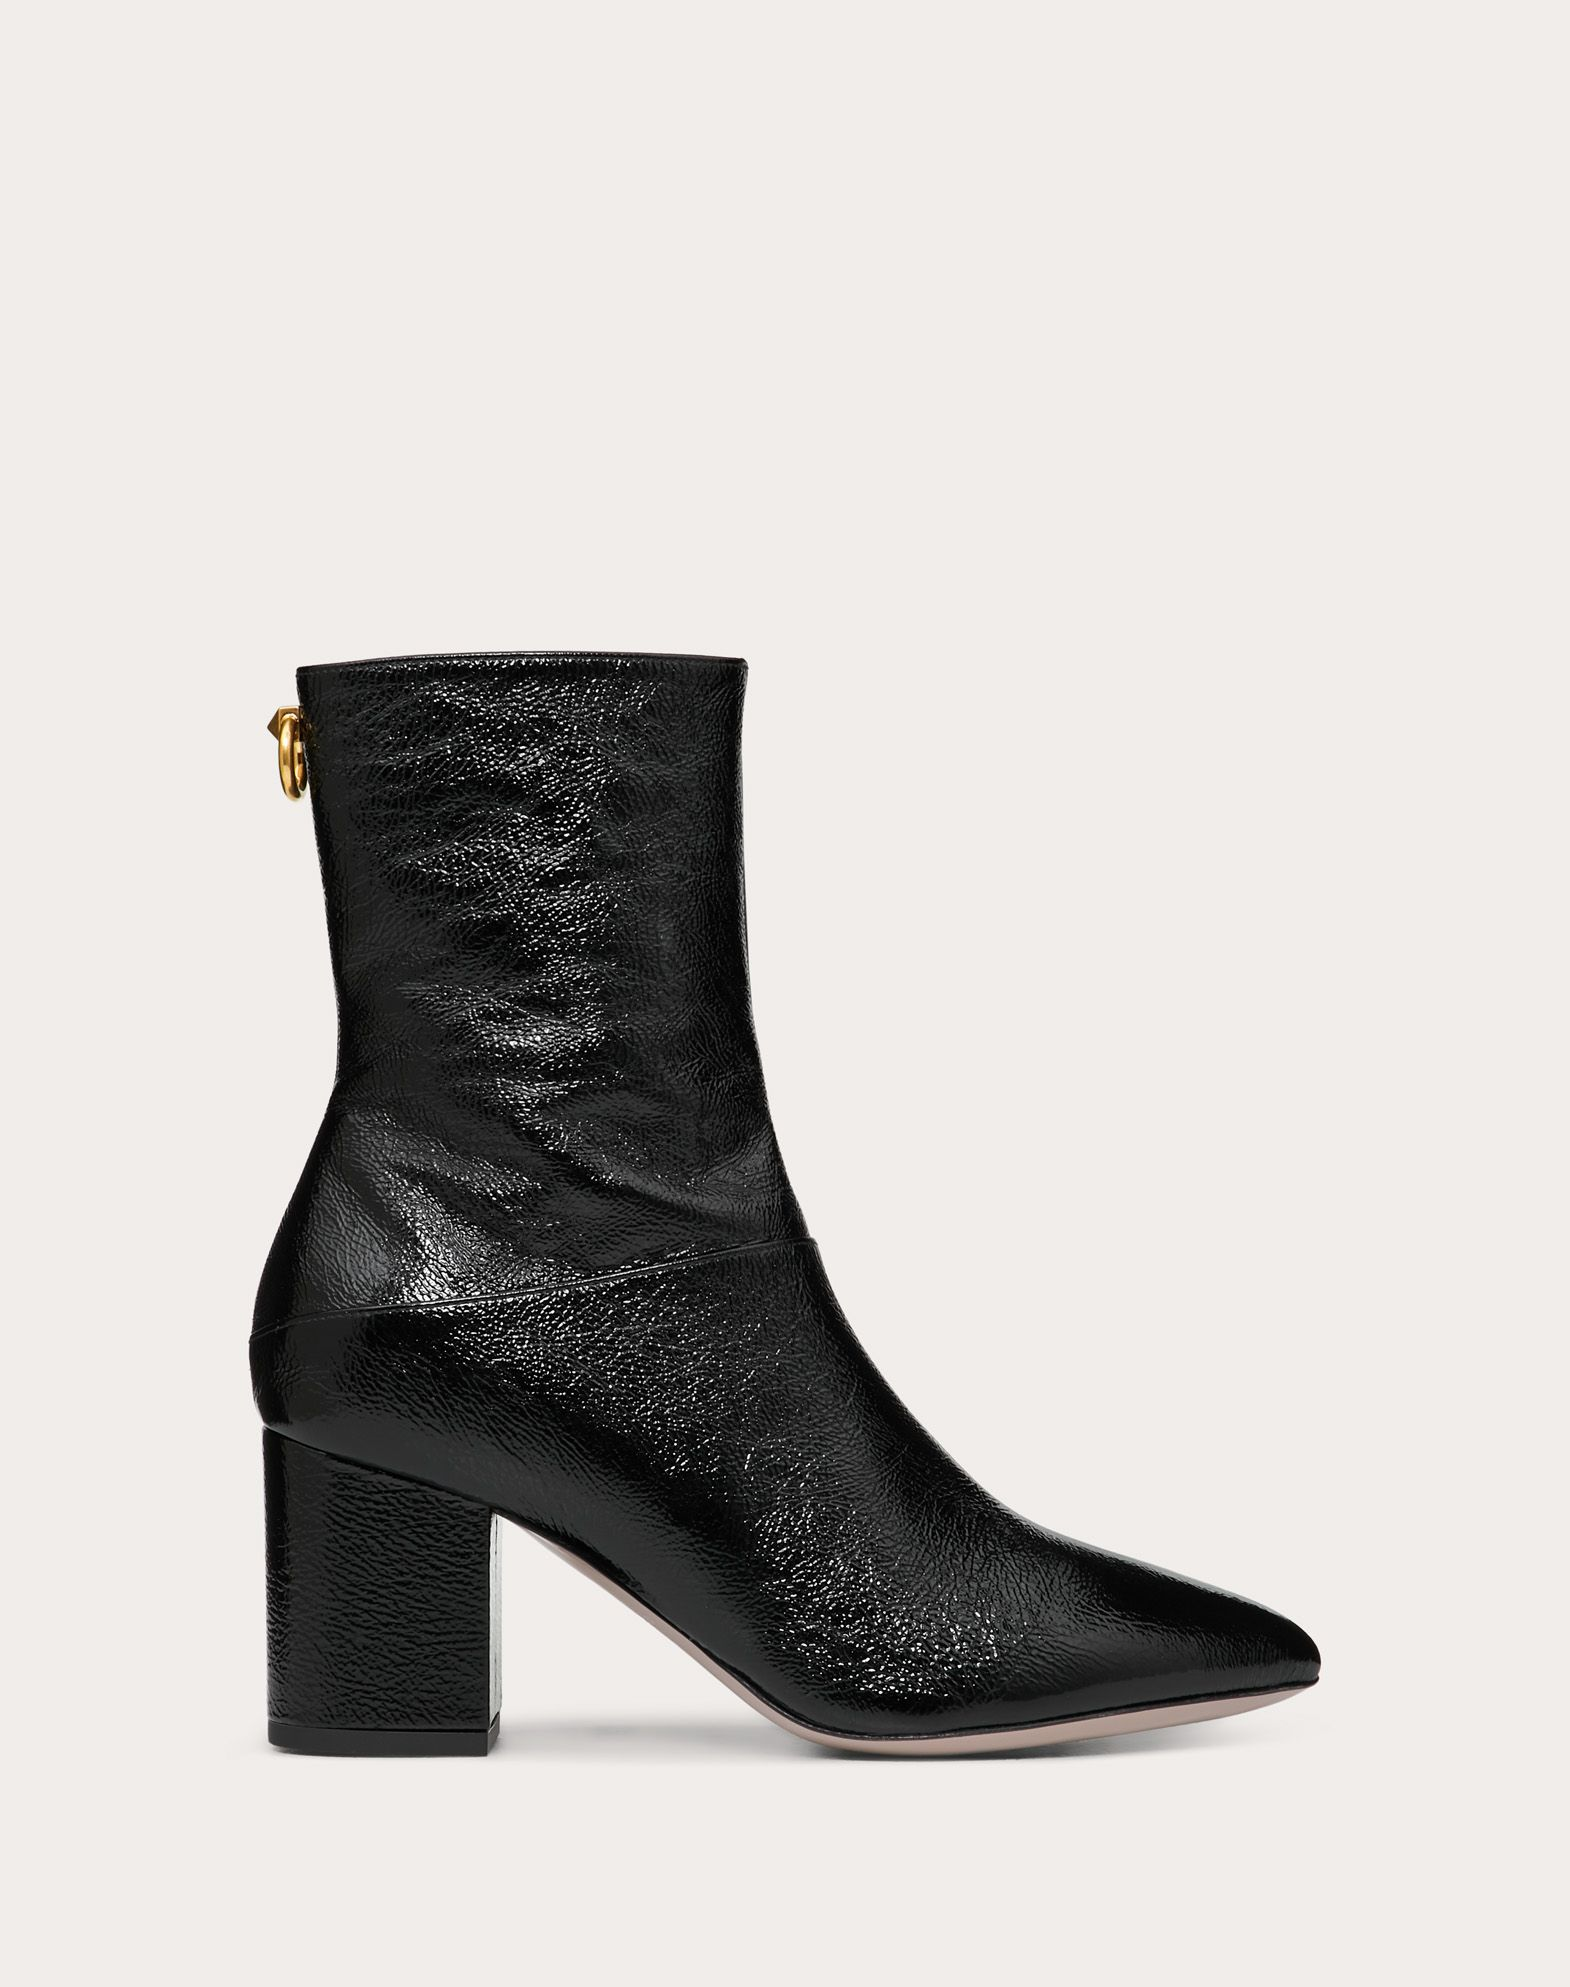 Naplak Leather Ankle Boot with Loop Detail 70 mm